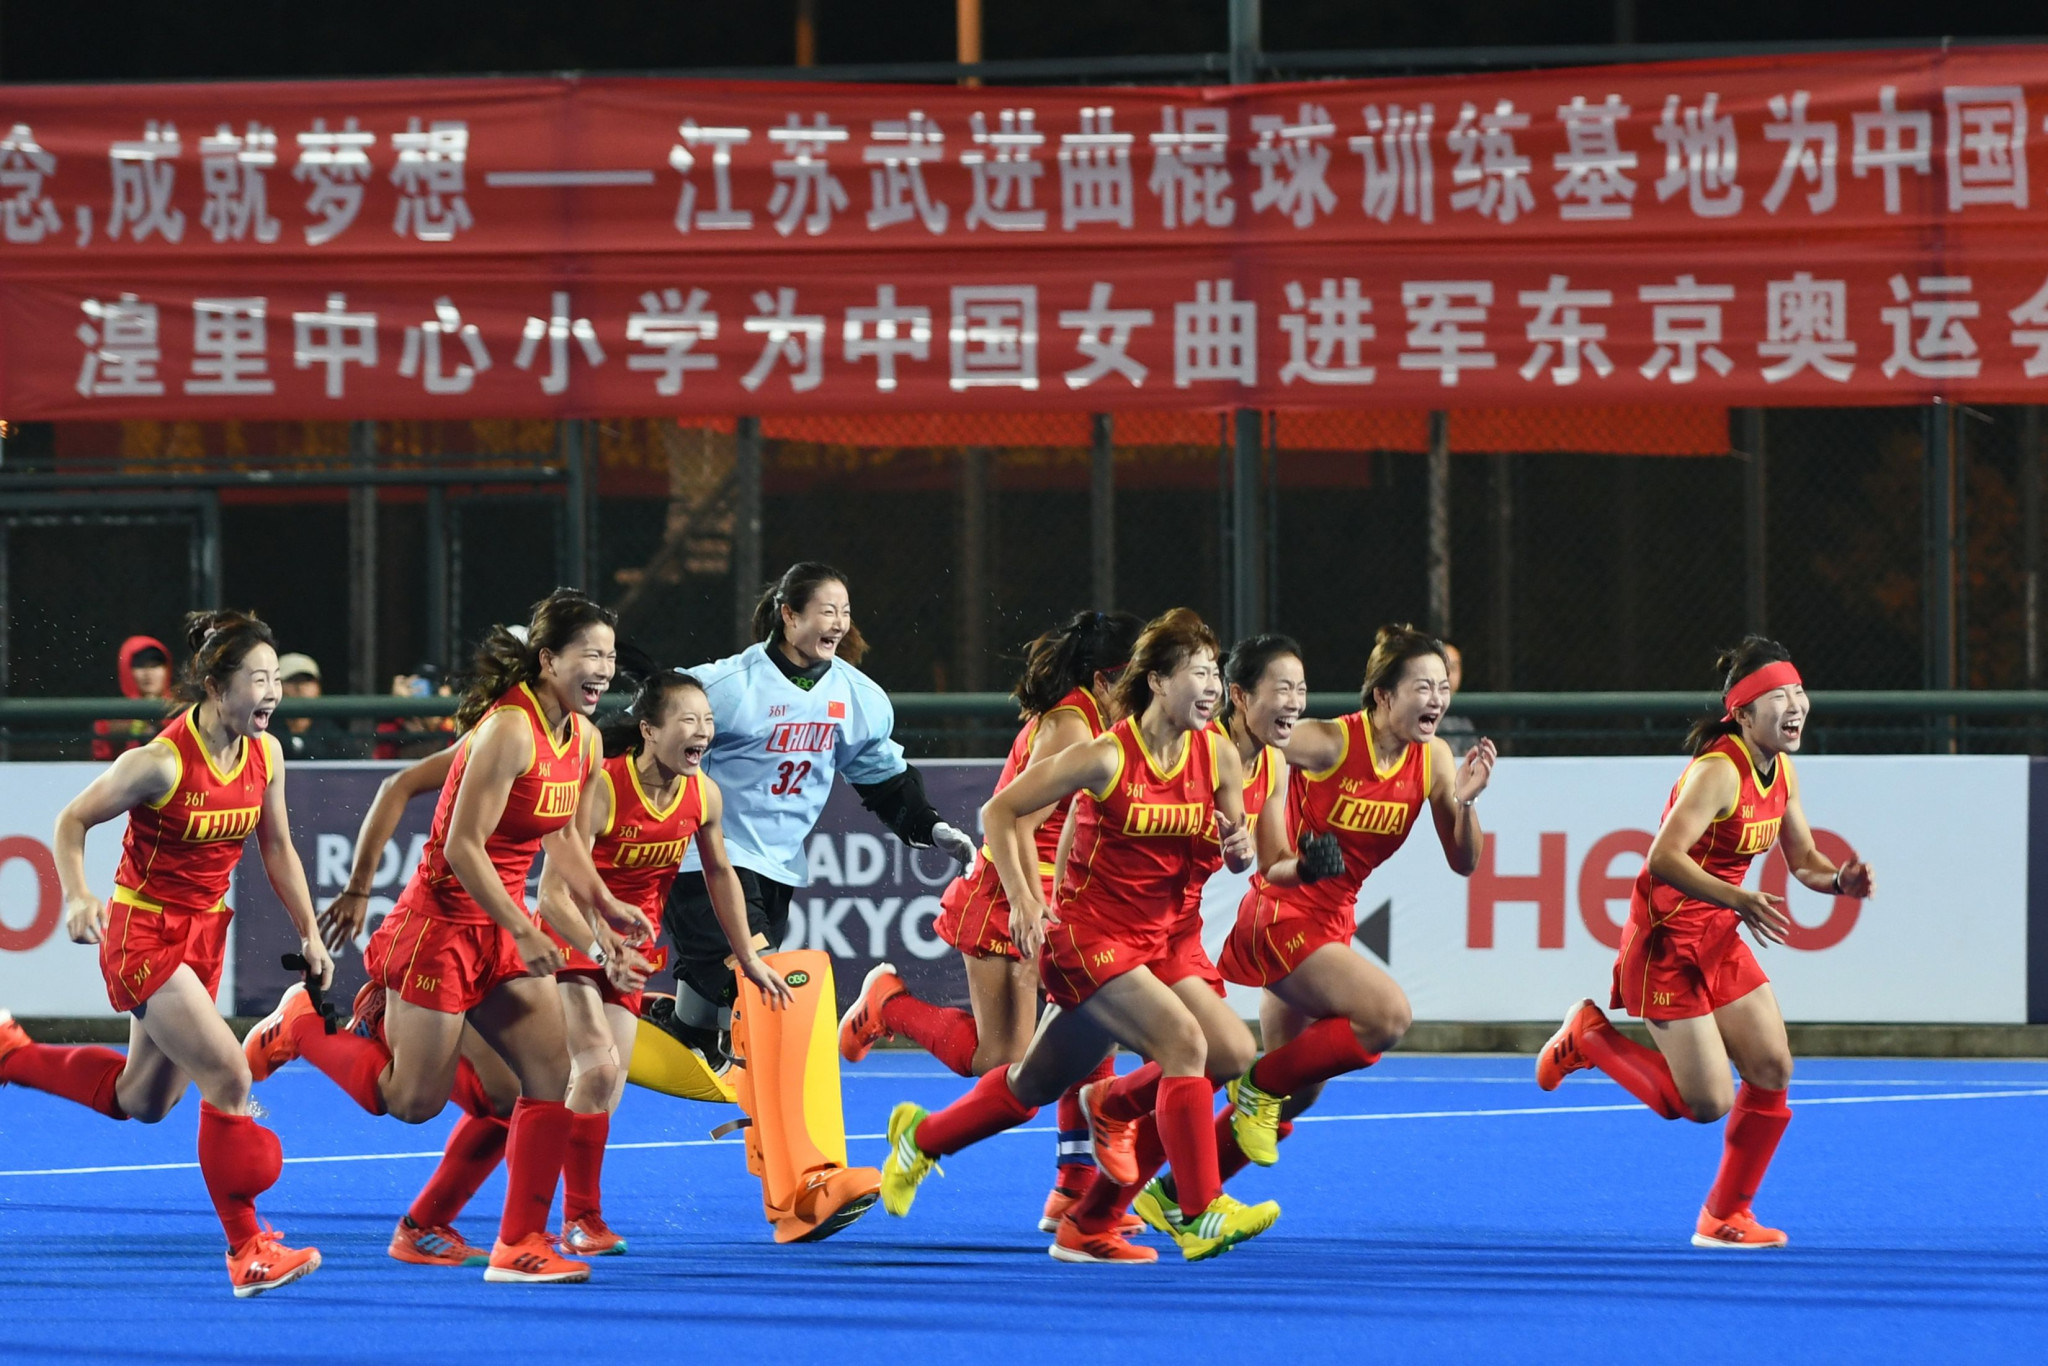 China and Australia qualify for women's hockey event at Tokyo 2020